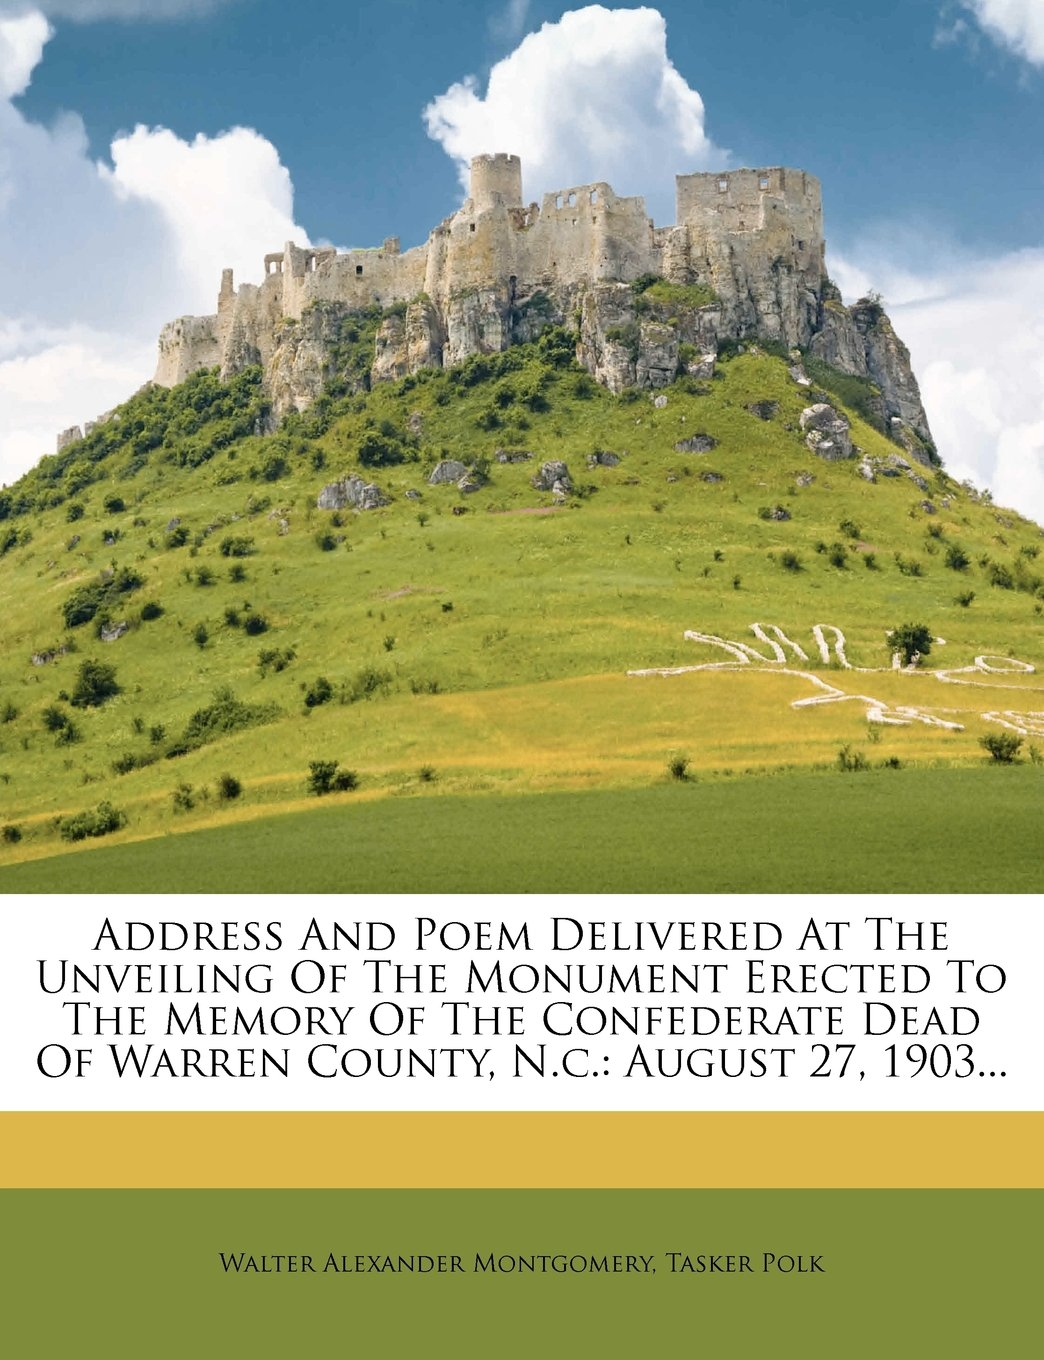 Download Address And Poem Delivered At The Unveiling Of The Monument Erected To The Memory Of The Confederate Dead Of Warren County, N.c.: August 27, 1903... ebook